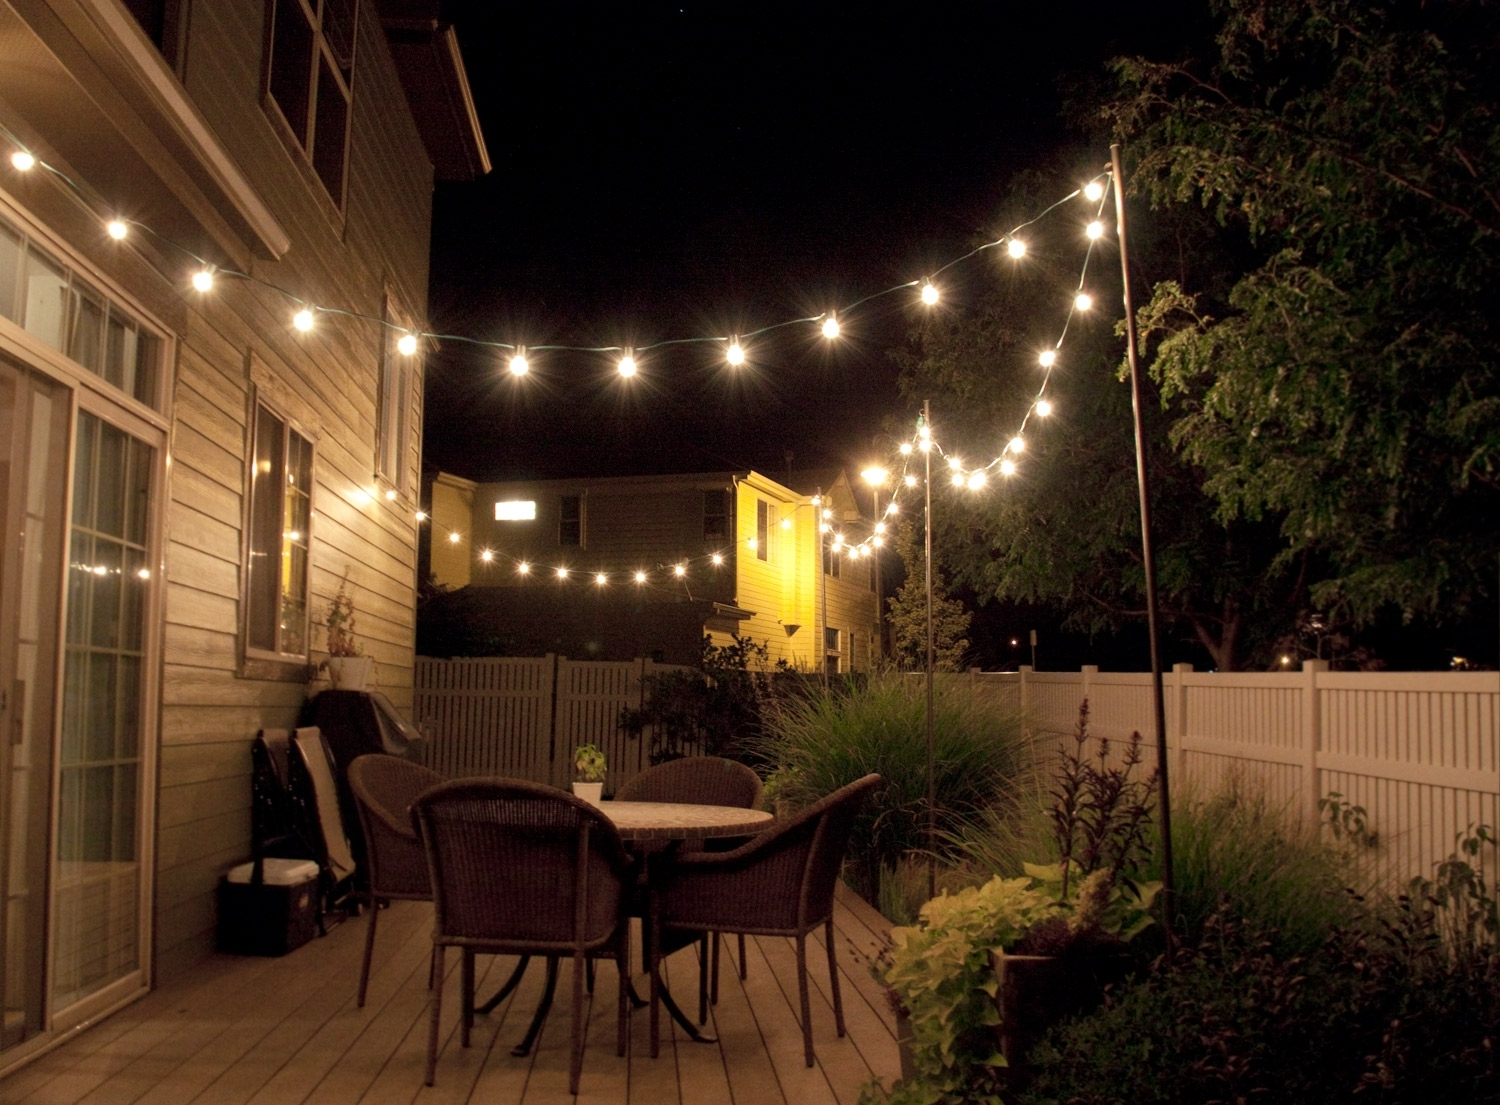 Bright July: {Diy}: Outdoor String Lights Throughout Outdoor Hanging Lights For Christmas (View 11 of 15)